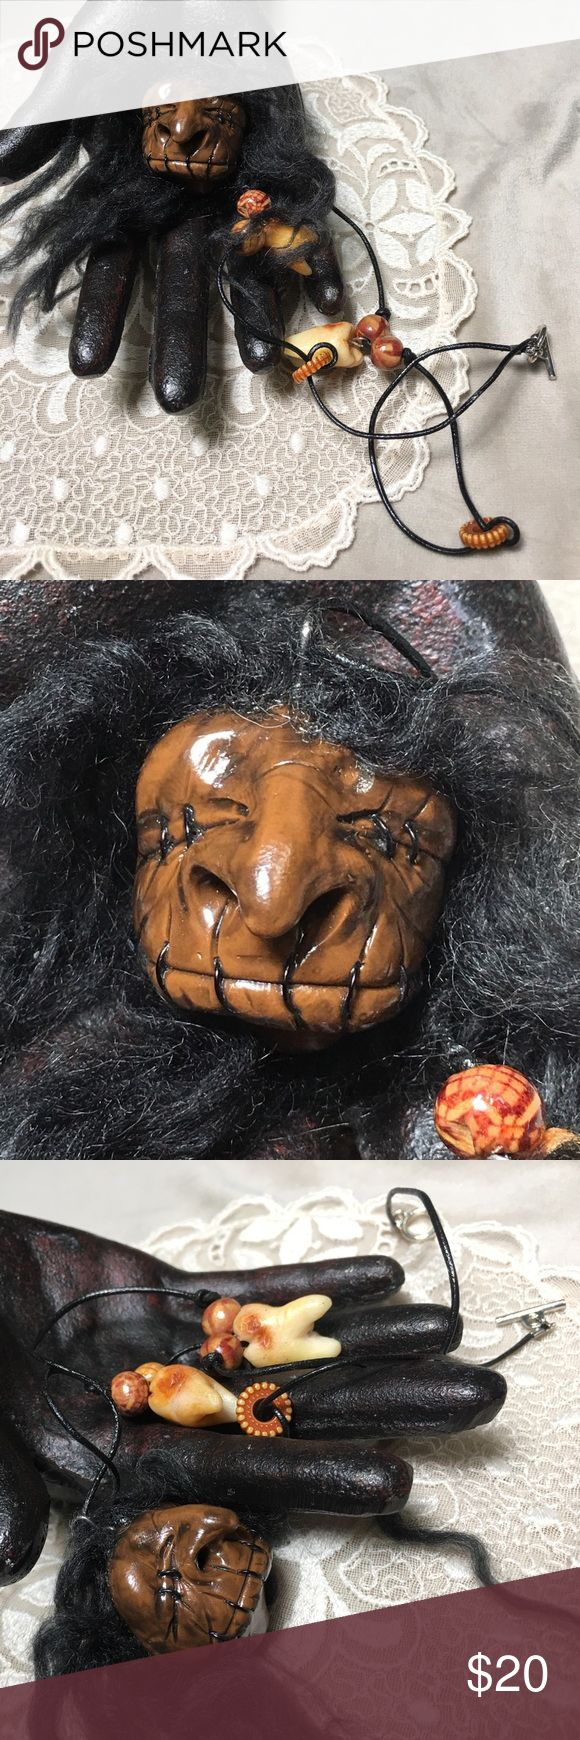 """Handmade Shrunken Head W/ Rotting Teeth Necklace Shrunken head pendant on black cord accompanied by wood beads and faux rotten teeth. Handmade. This fella has a huge nose and is quite the character! Hair is mohair. Measures 20"""" long and has a toggle clasp. Pendant is 1.5"""" long and 1.5"""" wide. Handmade Jewelry Necklaces"""